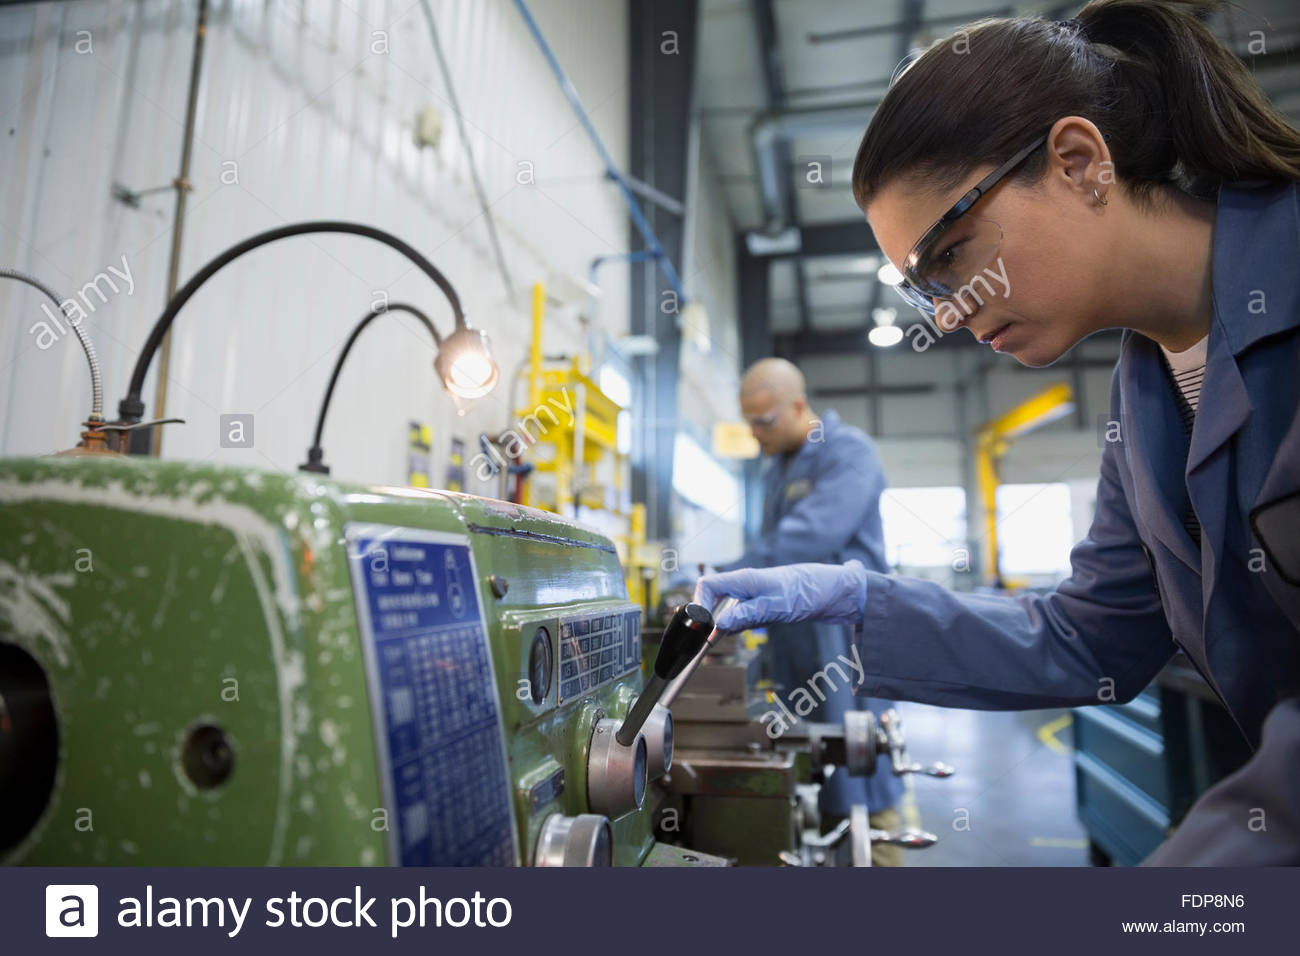 Worker using machinery in textile factory - Stock Image